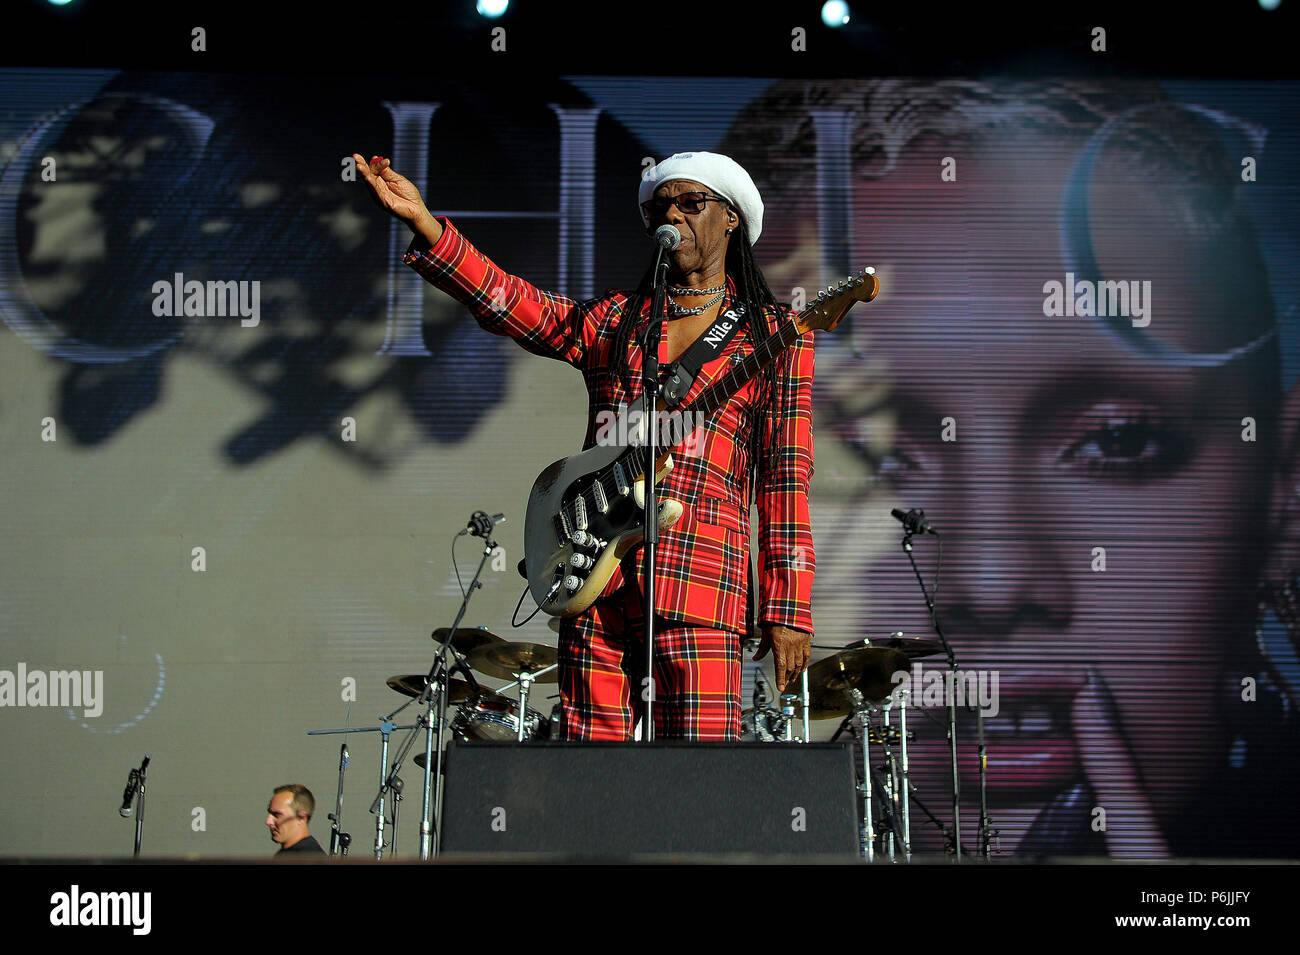 Glasgow, UK. 30th Jun, 2018. Fiesta X FOLD Festival Glasgow Glasgow.   The inaugural Fiesta X FOLD Festival in Kelvingrove Park, Glasgow.  Nile Rogers performs on the Main Stage on Saturday 30th June 2018   Picture © Andy Buchanan Credit: Andy Buchanan/Alamy Live News Stock Photo